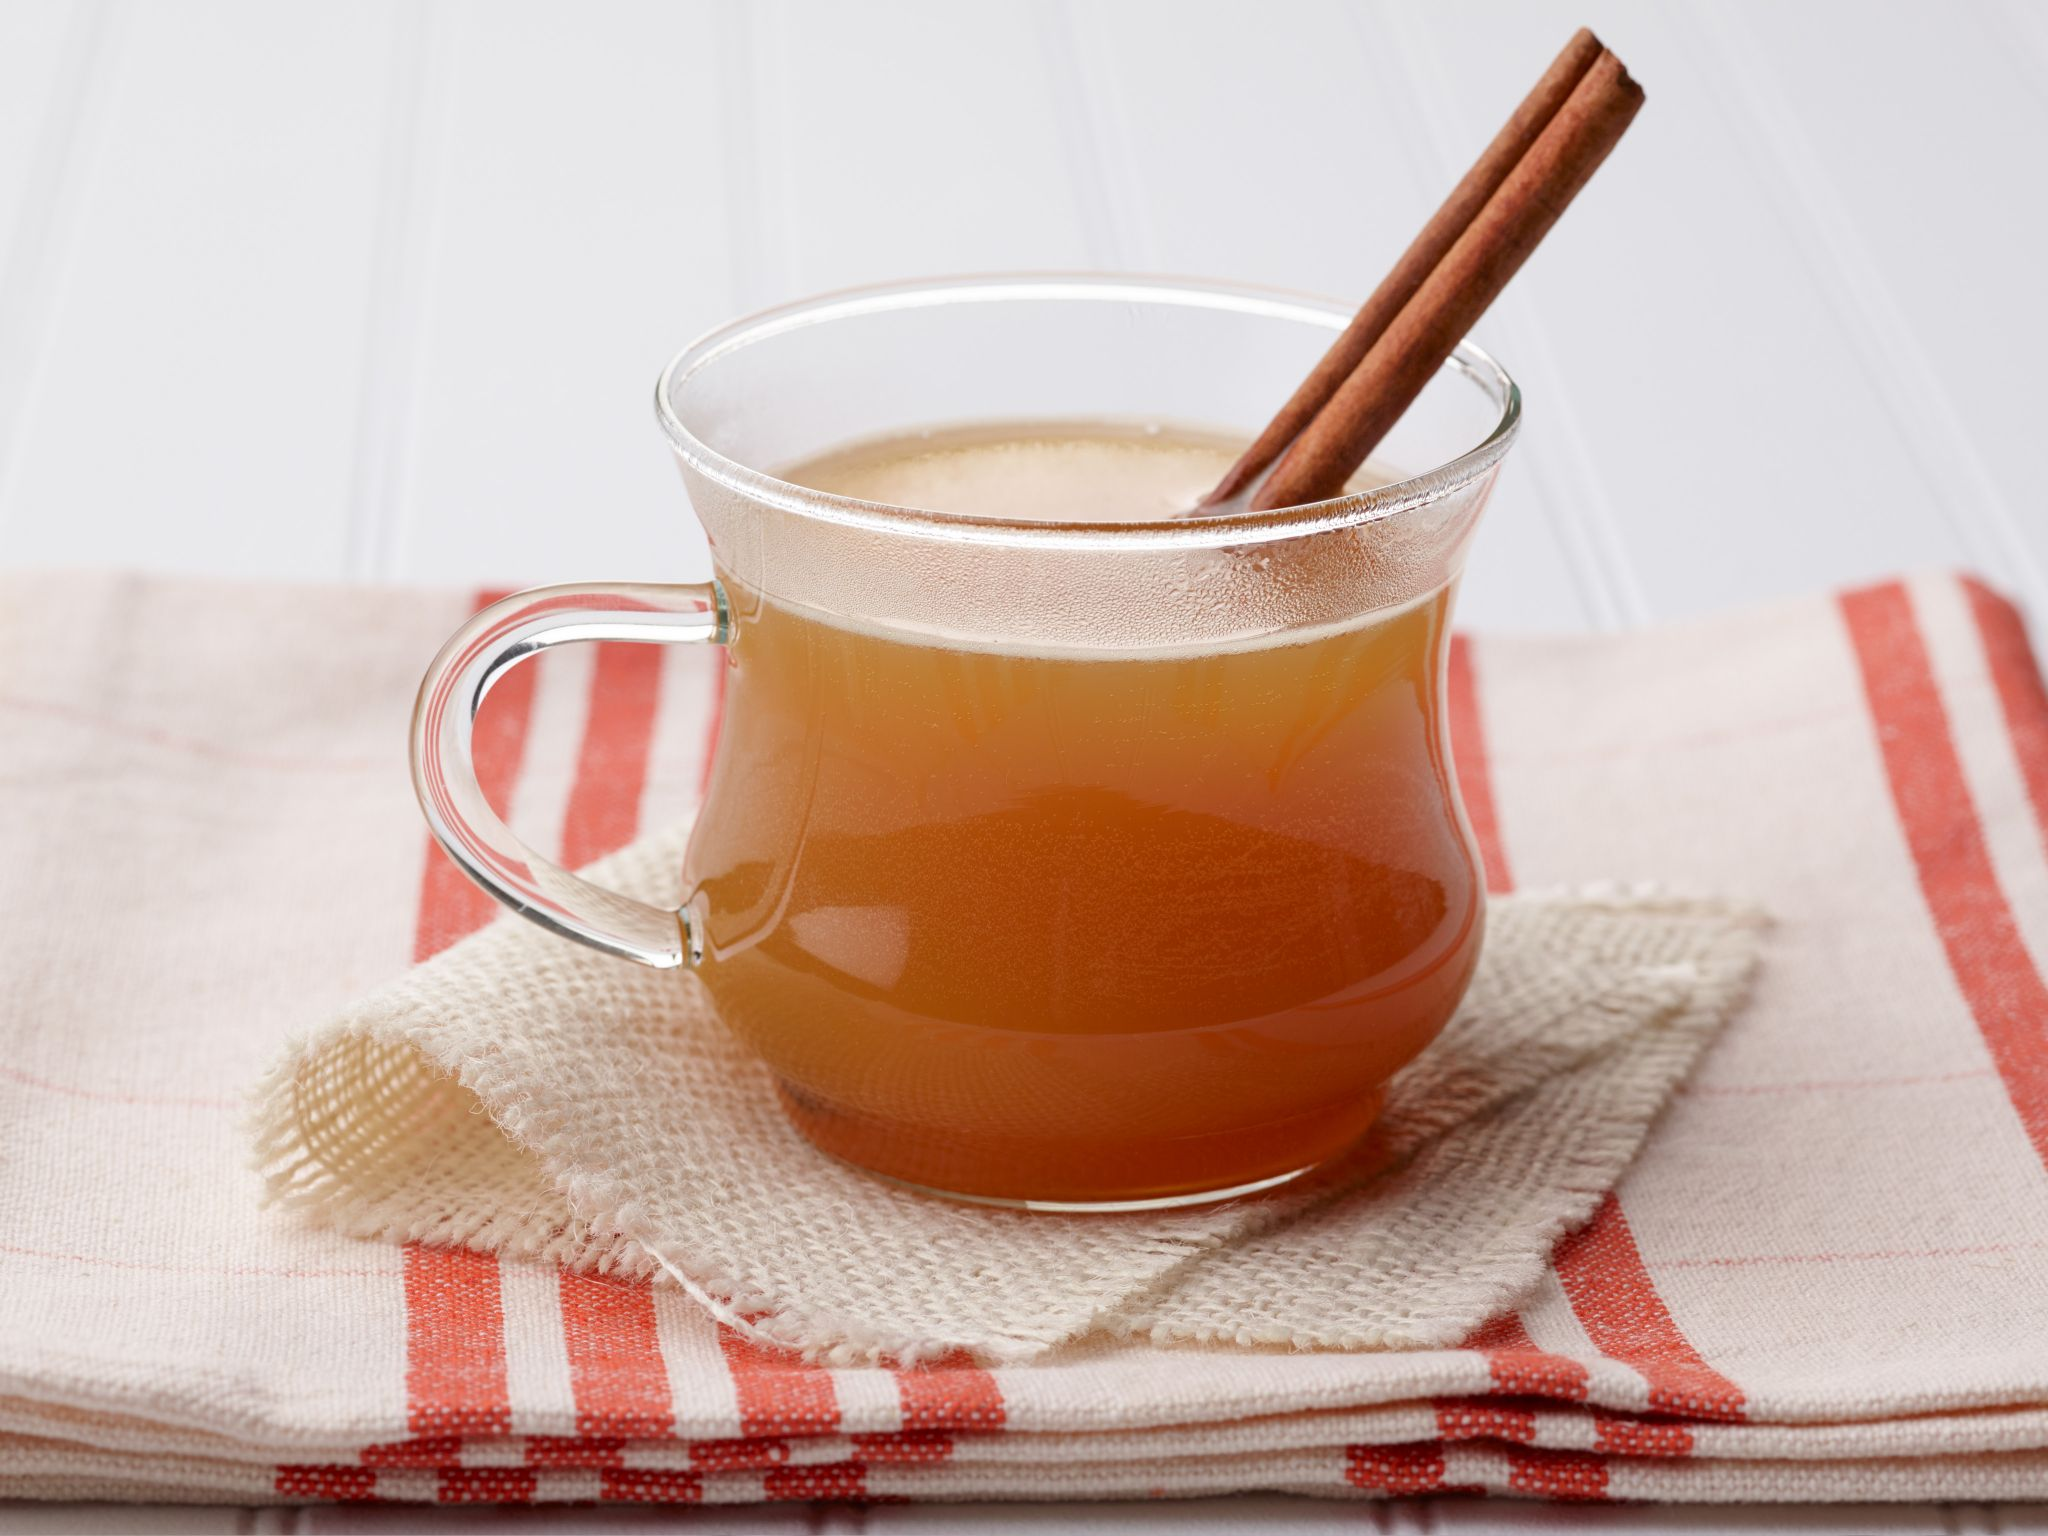 http://www.foodnetwork.com/recipes/nancy-fuller/spiced-cider.html